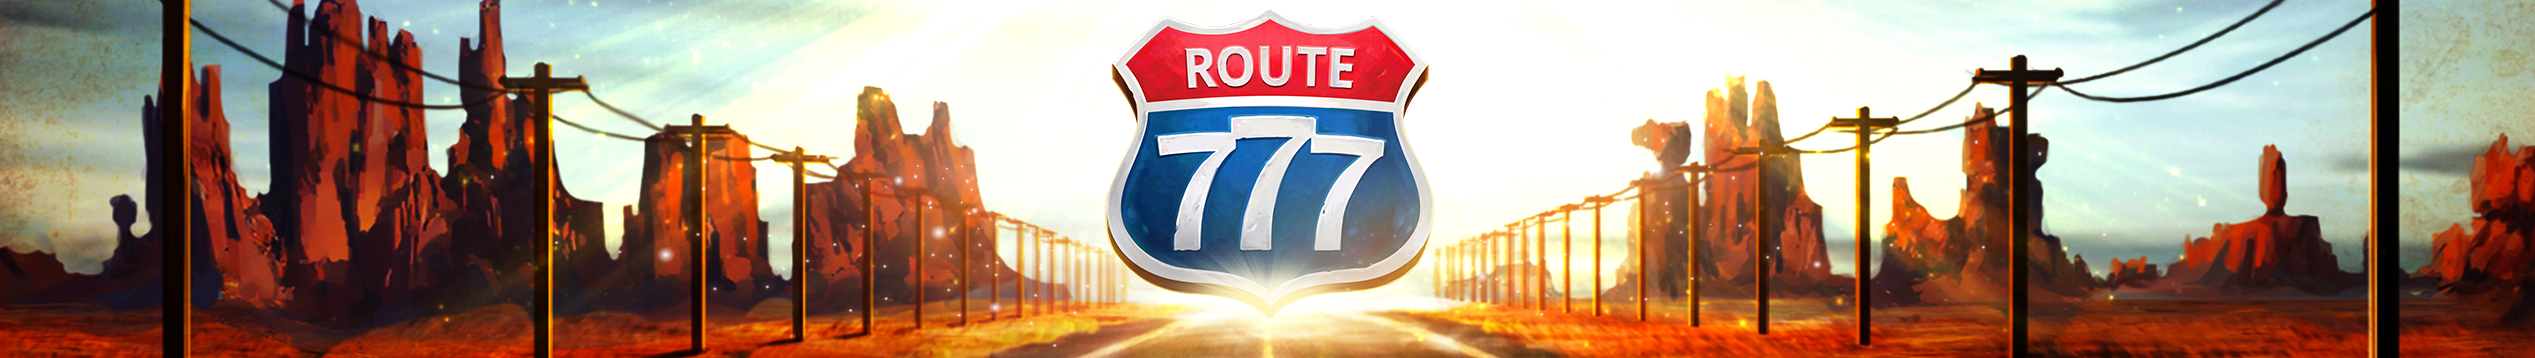 Try out new Route 777